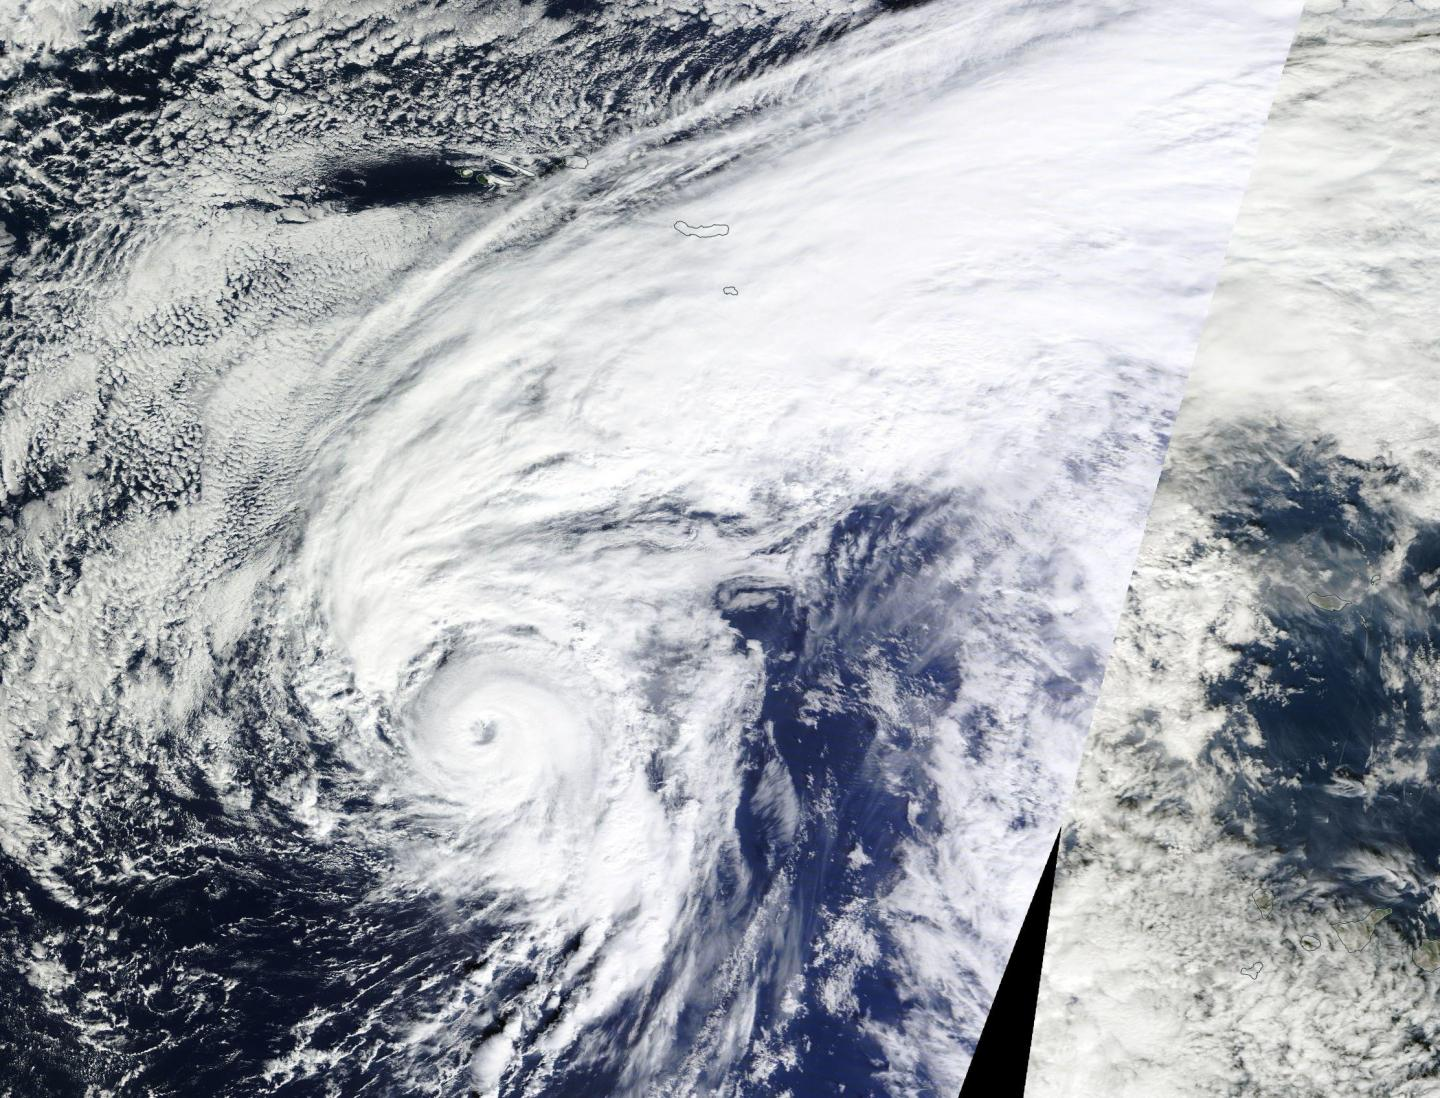 Hurricane Alex on Jan. 14 at 15:30 UTC (10:30 a.m. EST) in the central Atlantic Ocean. The image revealed an eye and showed bands of thunderstorms spiraling into the low level center of circulation. Credit: NASA Goddard MODIS Rapid Response